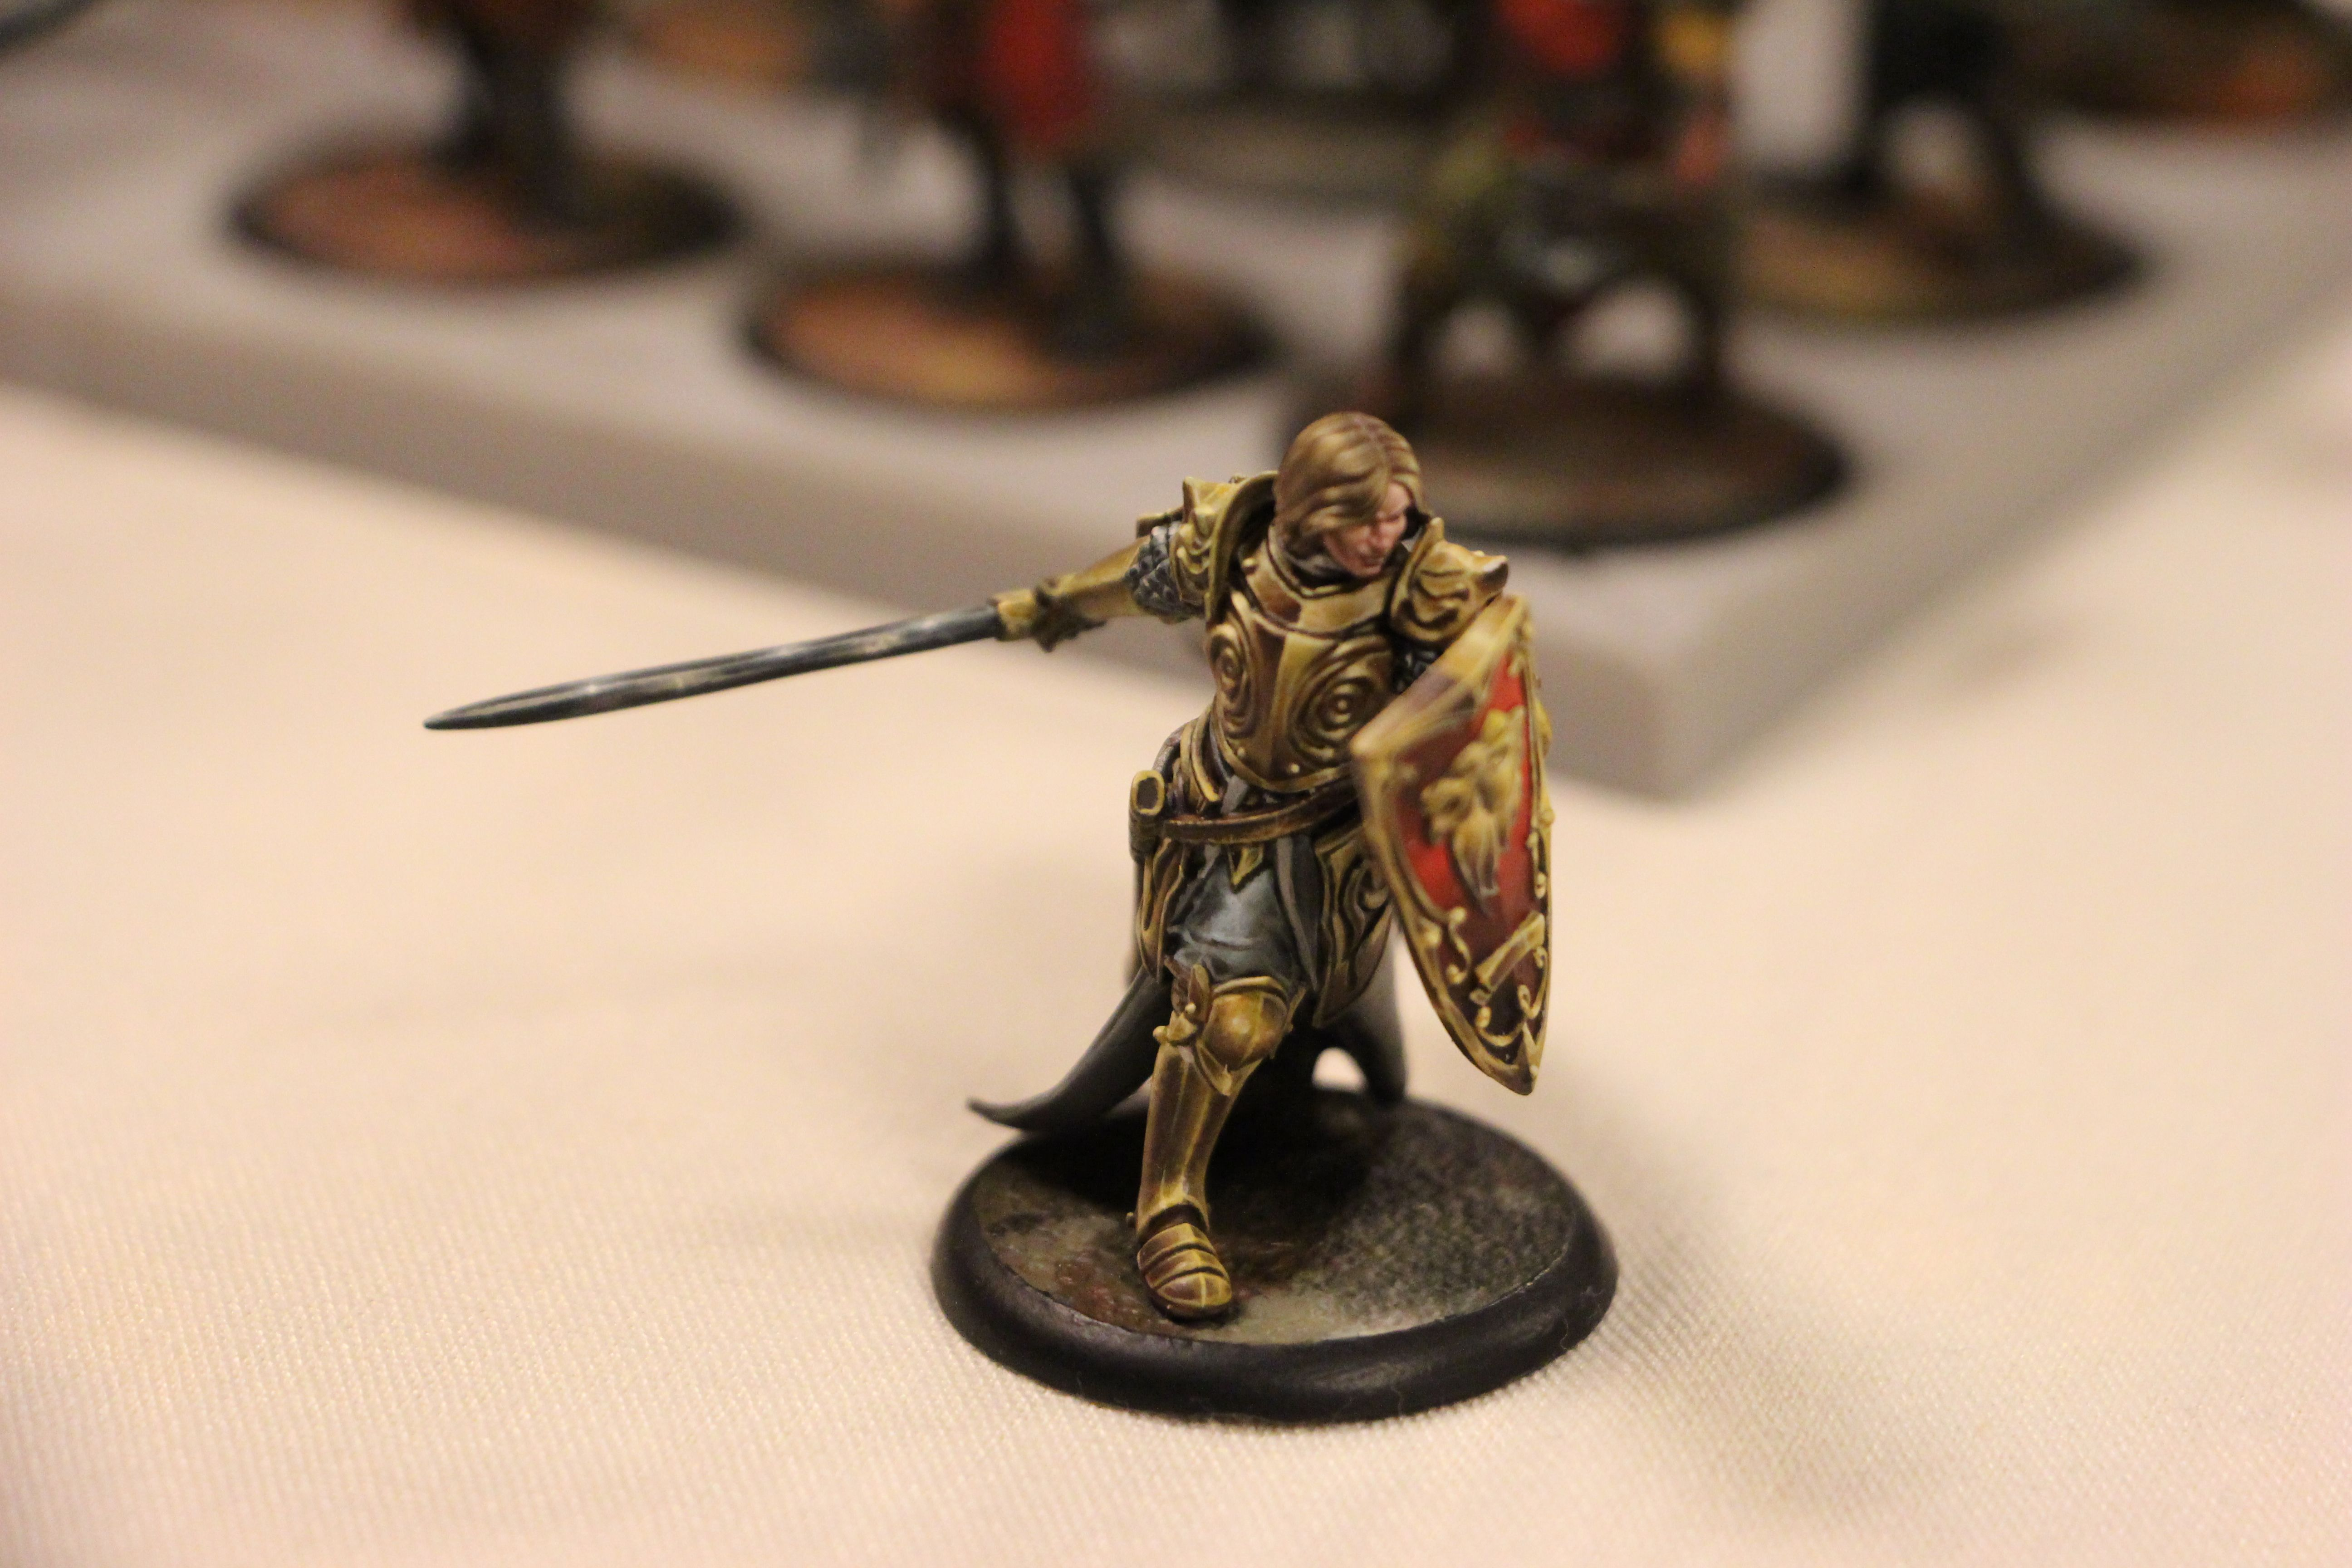 Exclusive Peek Of Painted Minis From The Song Of Ice And Fire